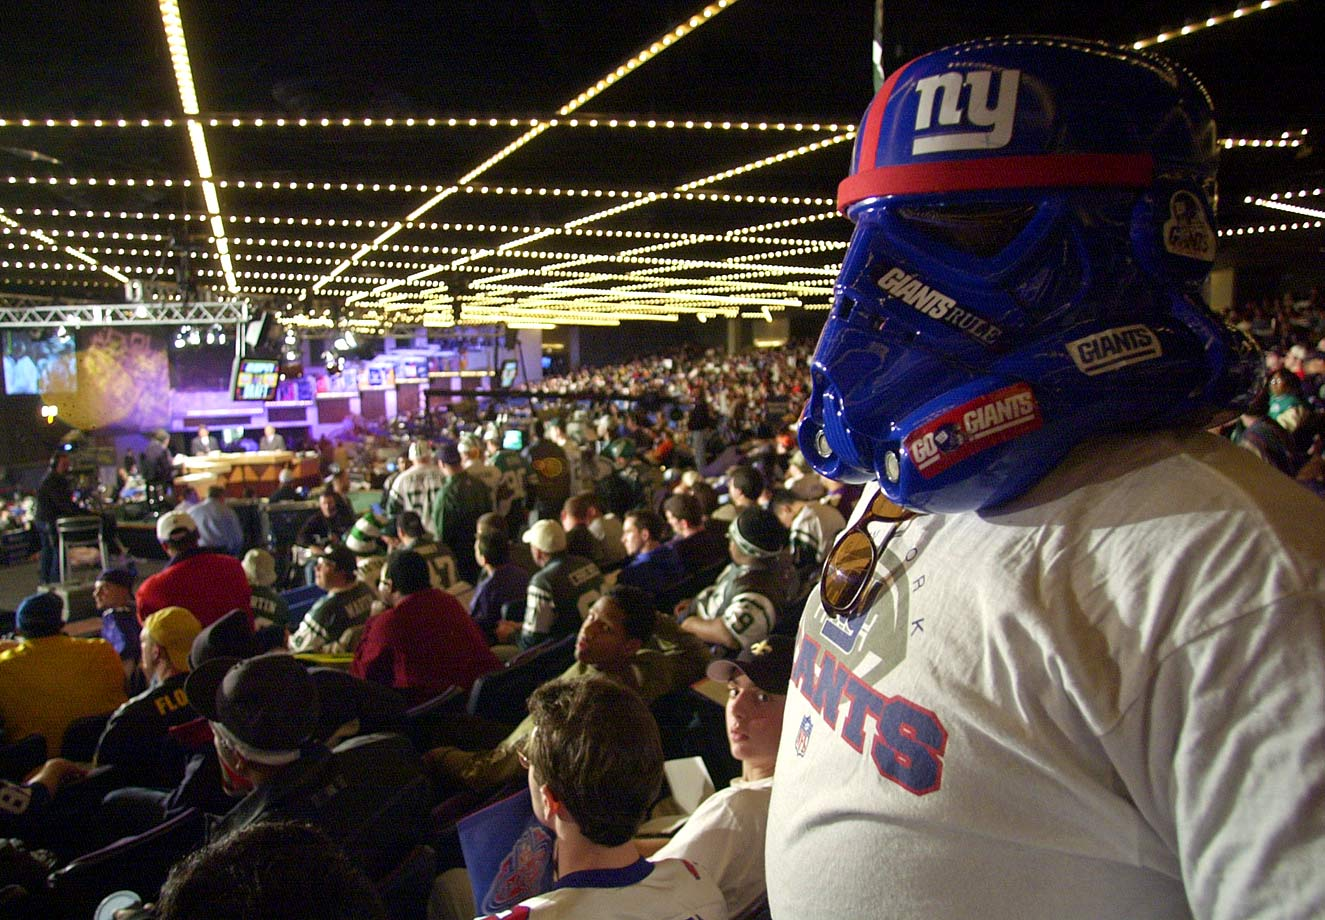 A New York Giants fan looks out at the other fans with his stormtrooper mask during the NFL Draft on April 21, 2001 at Madison Square Garden in New York City.